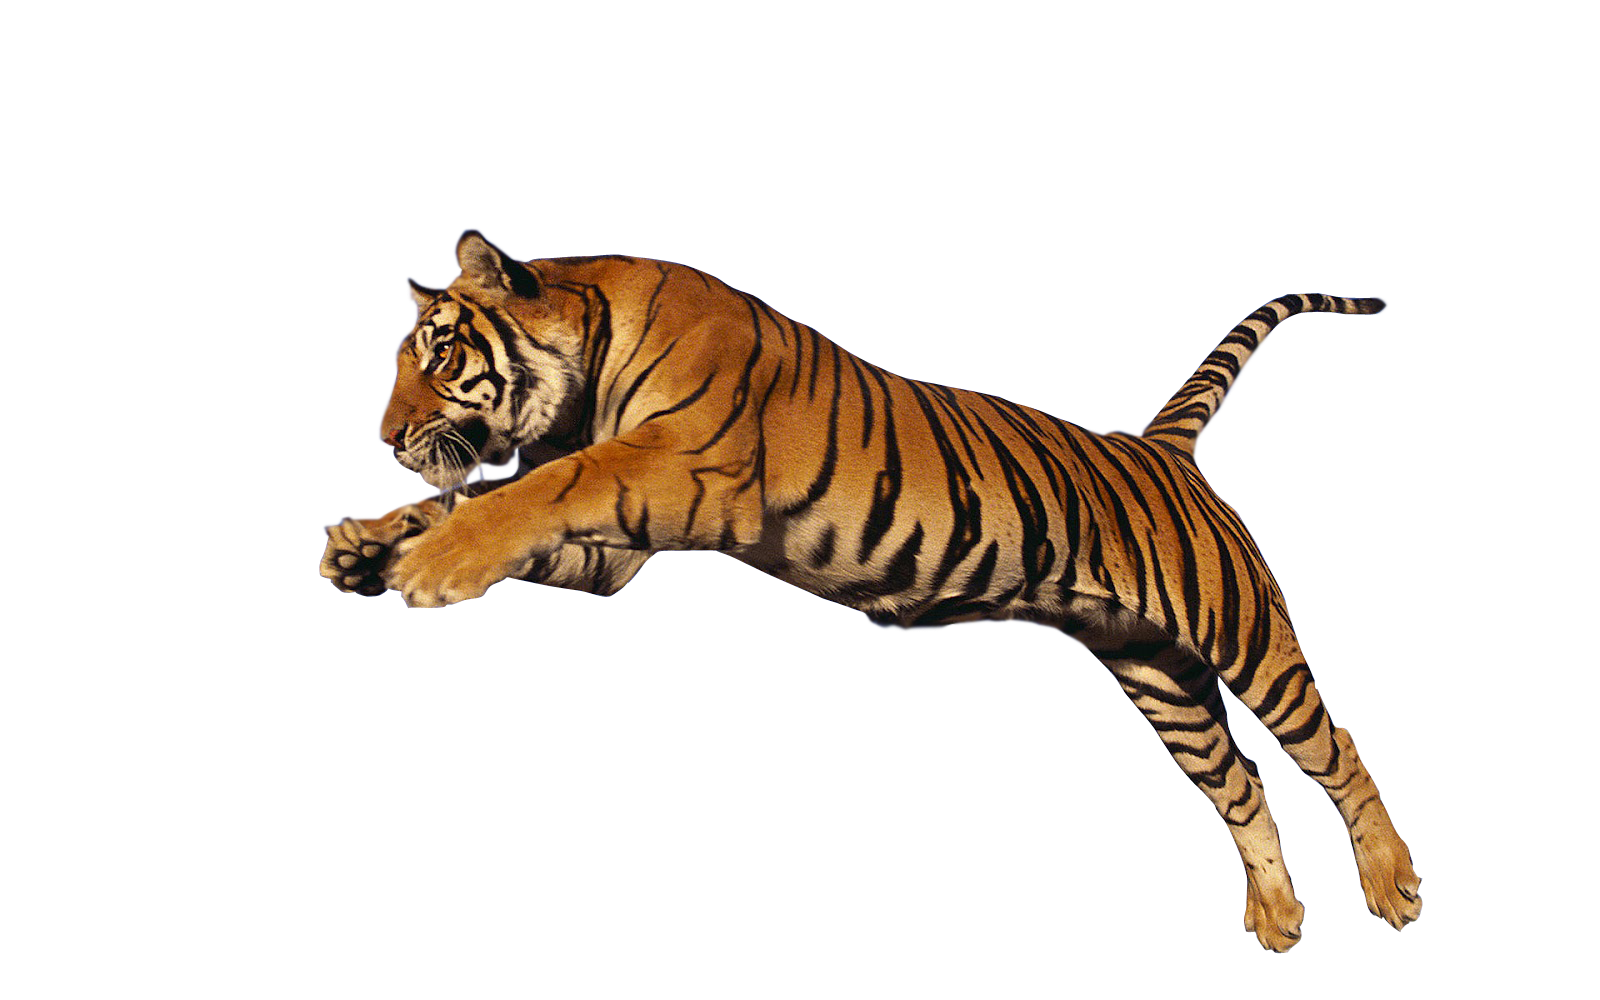 Tiger clipart leaping black and white library Pin by Craig Stewart on Photo Inspiration | Tiger images ... black and white library